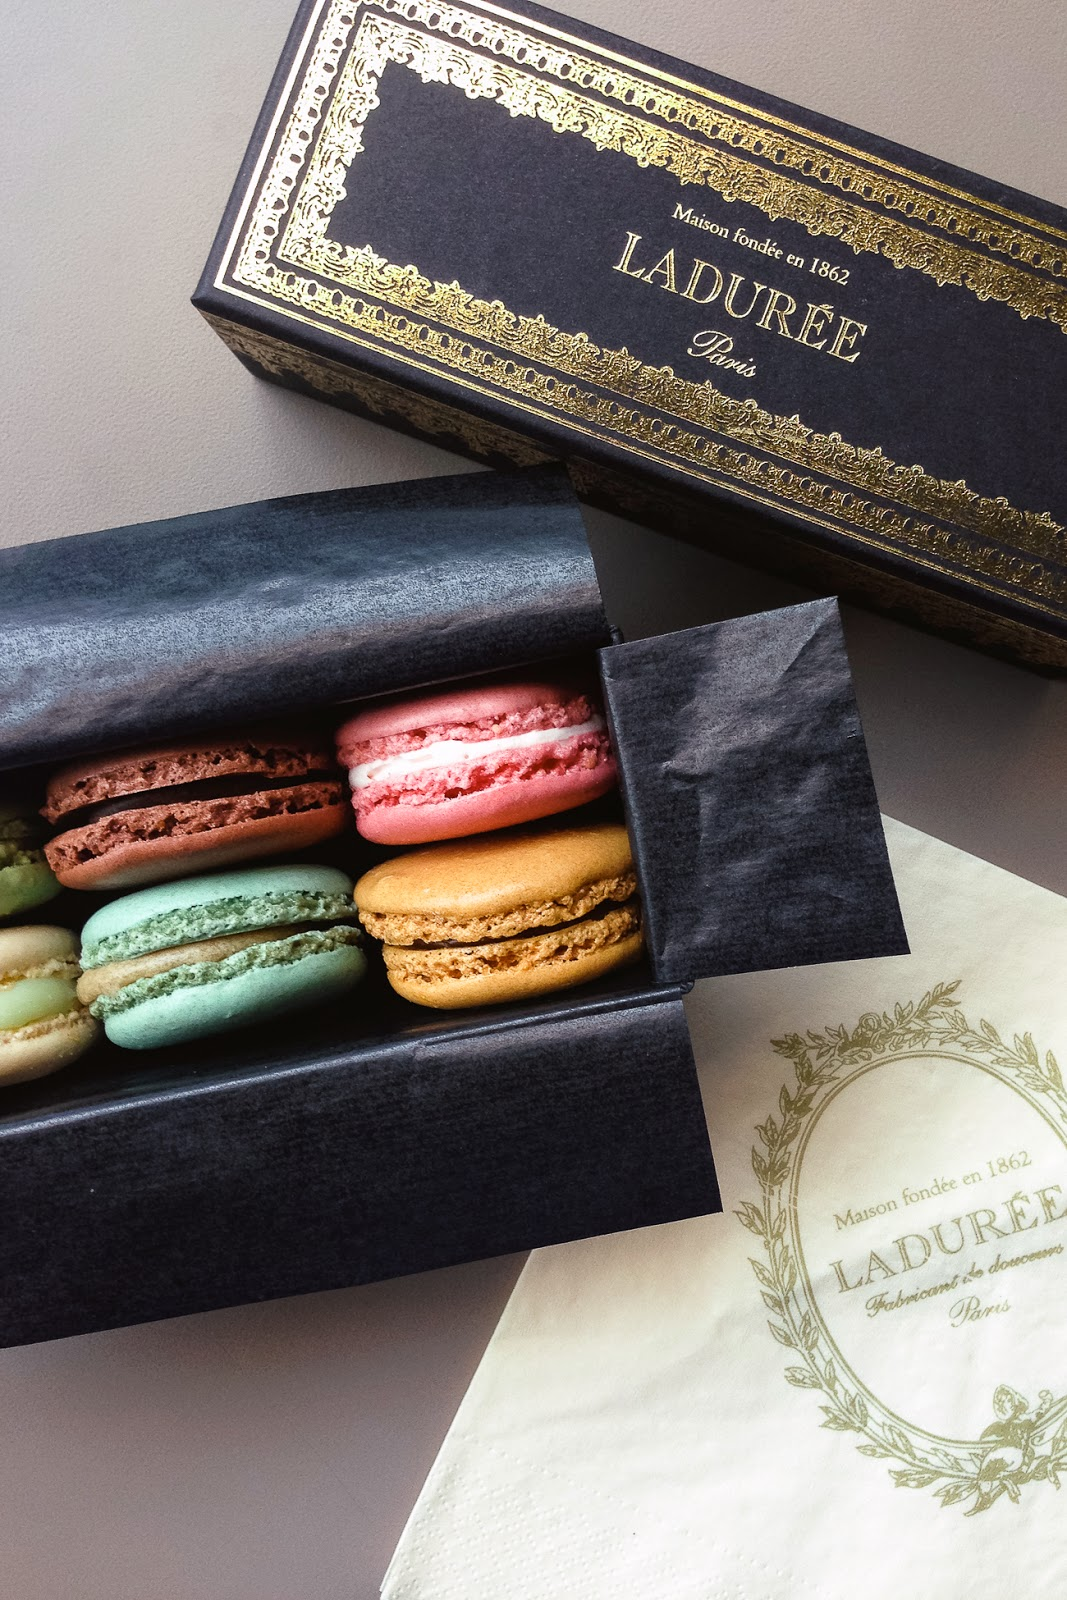 Macarons from Laduree / blog.jchongstudio.com